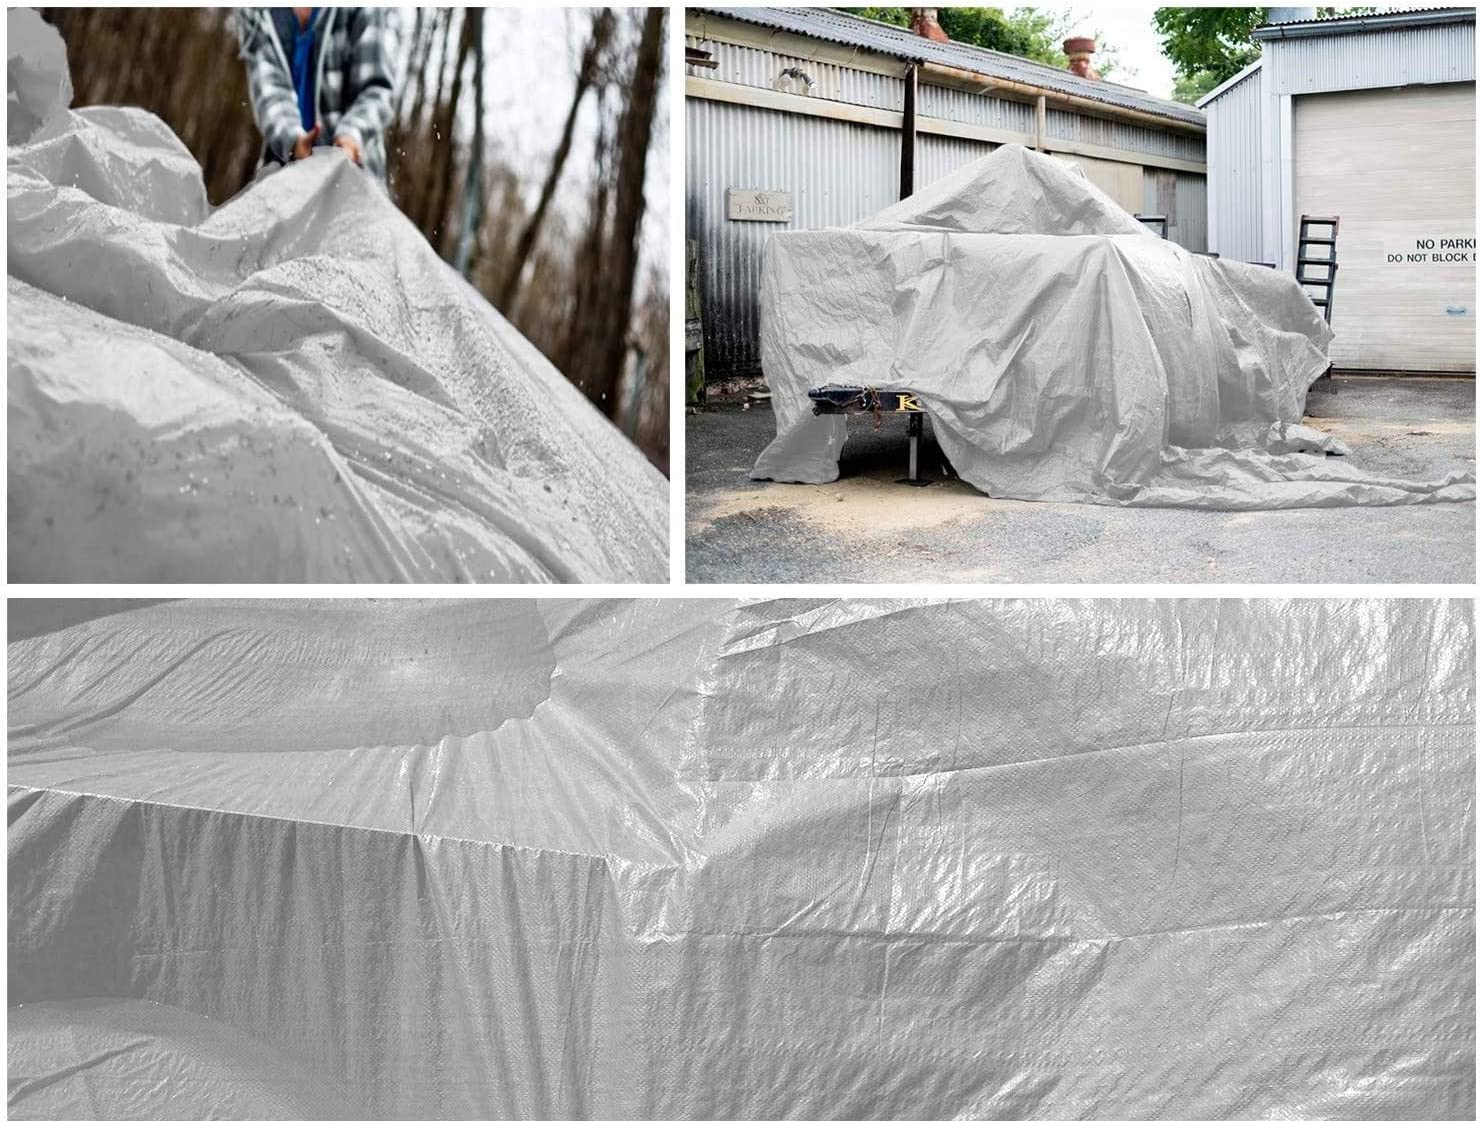 KAHEIGN 4m x 6m Tarpaulin Cover White PE 130g//m/² Heavy Duty Waterproof Tarp Cover Reinforced Eyelets Thicken Tarpaulin Sheet for Outdoor Camping Garden Canopy Balcony Tent